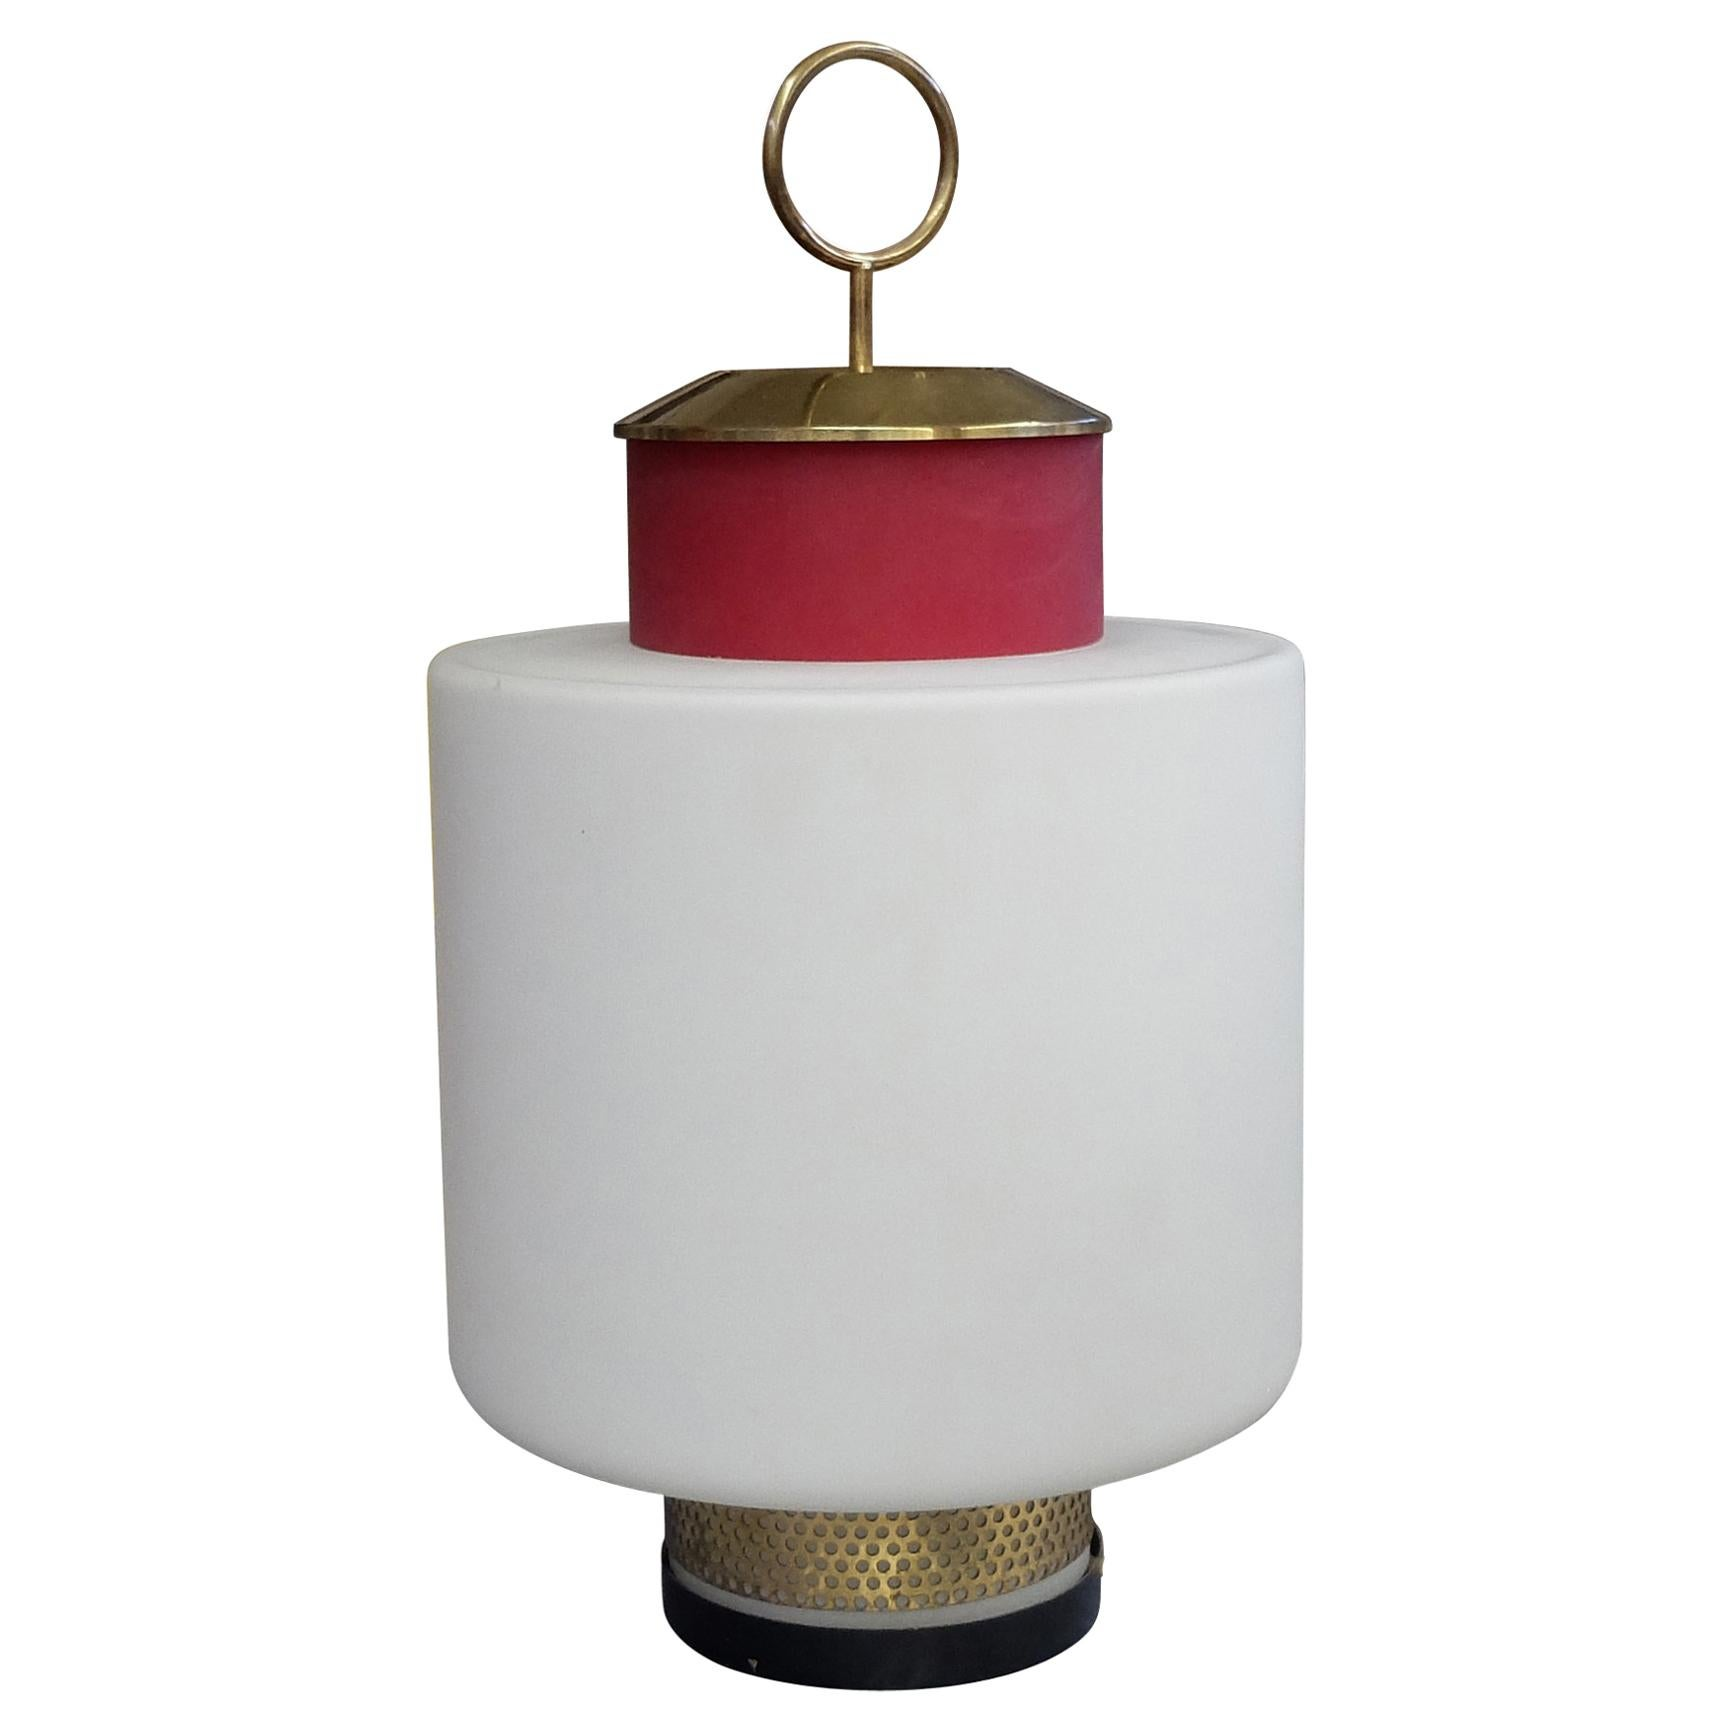 Stilnovo, Mid-Century Modern Red Glass and Brass Table Lamp, 1950s